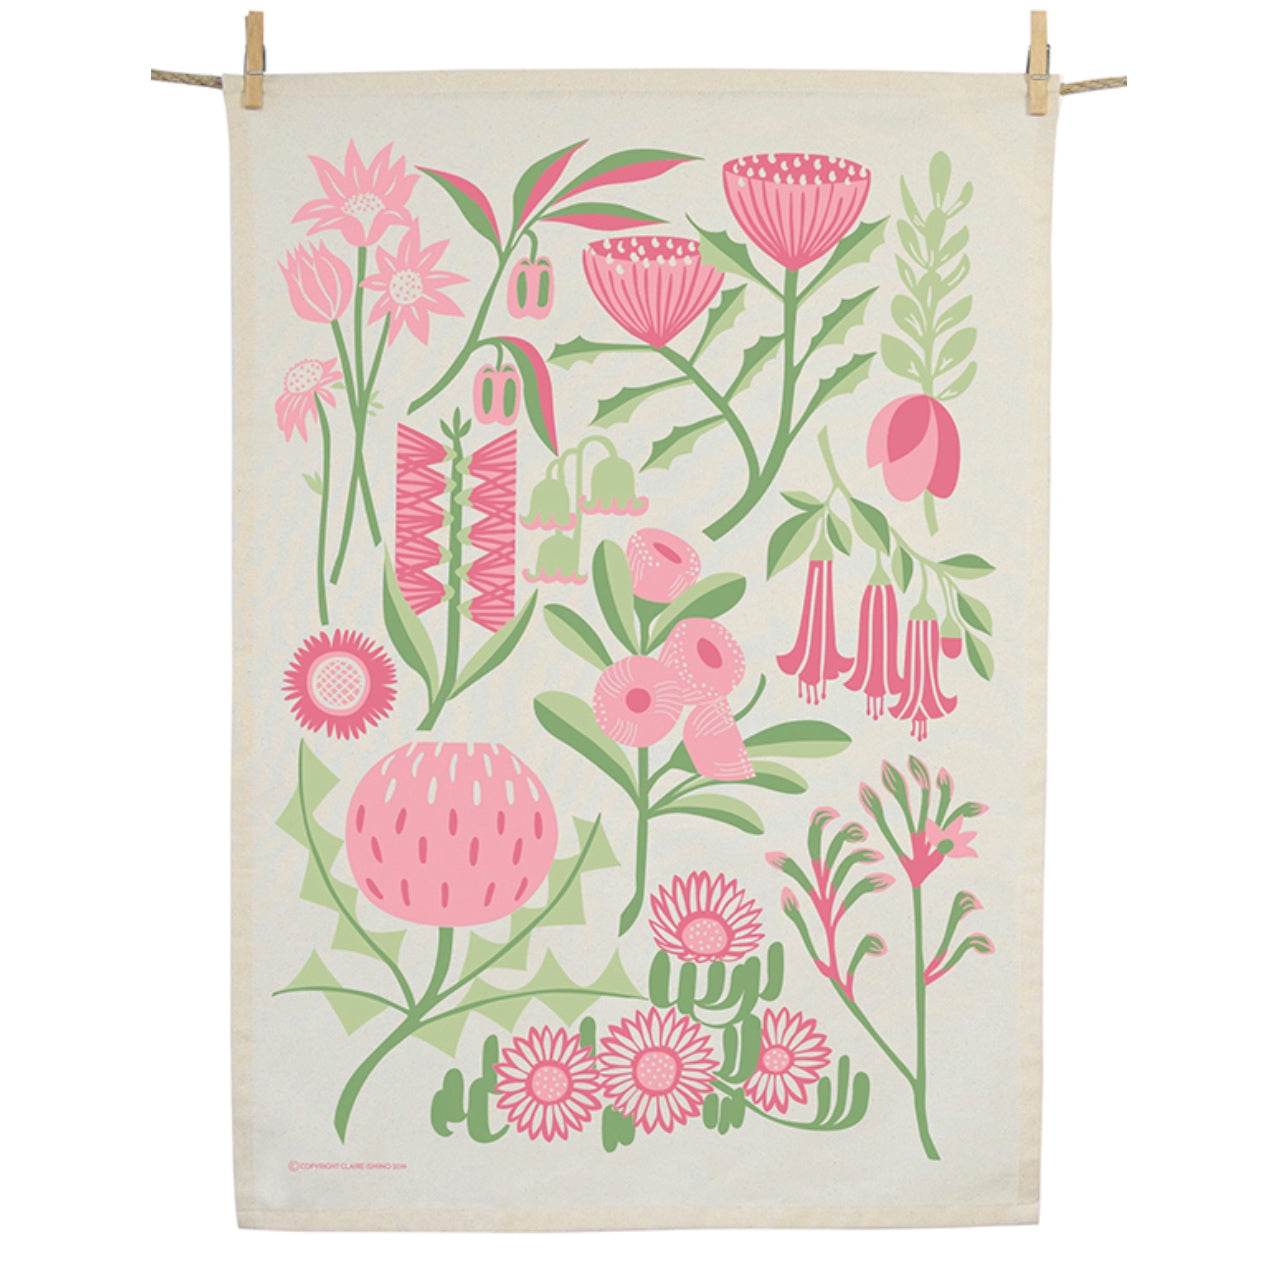 Earth Greetings Tea Towel - Bountiful Land